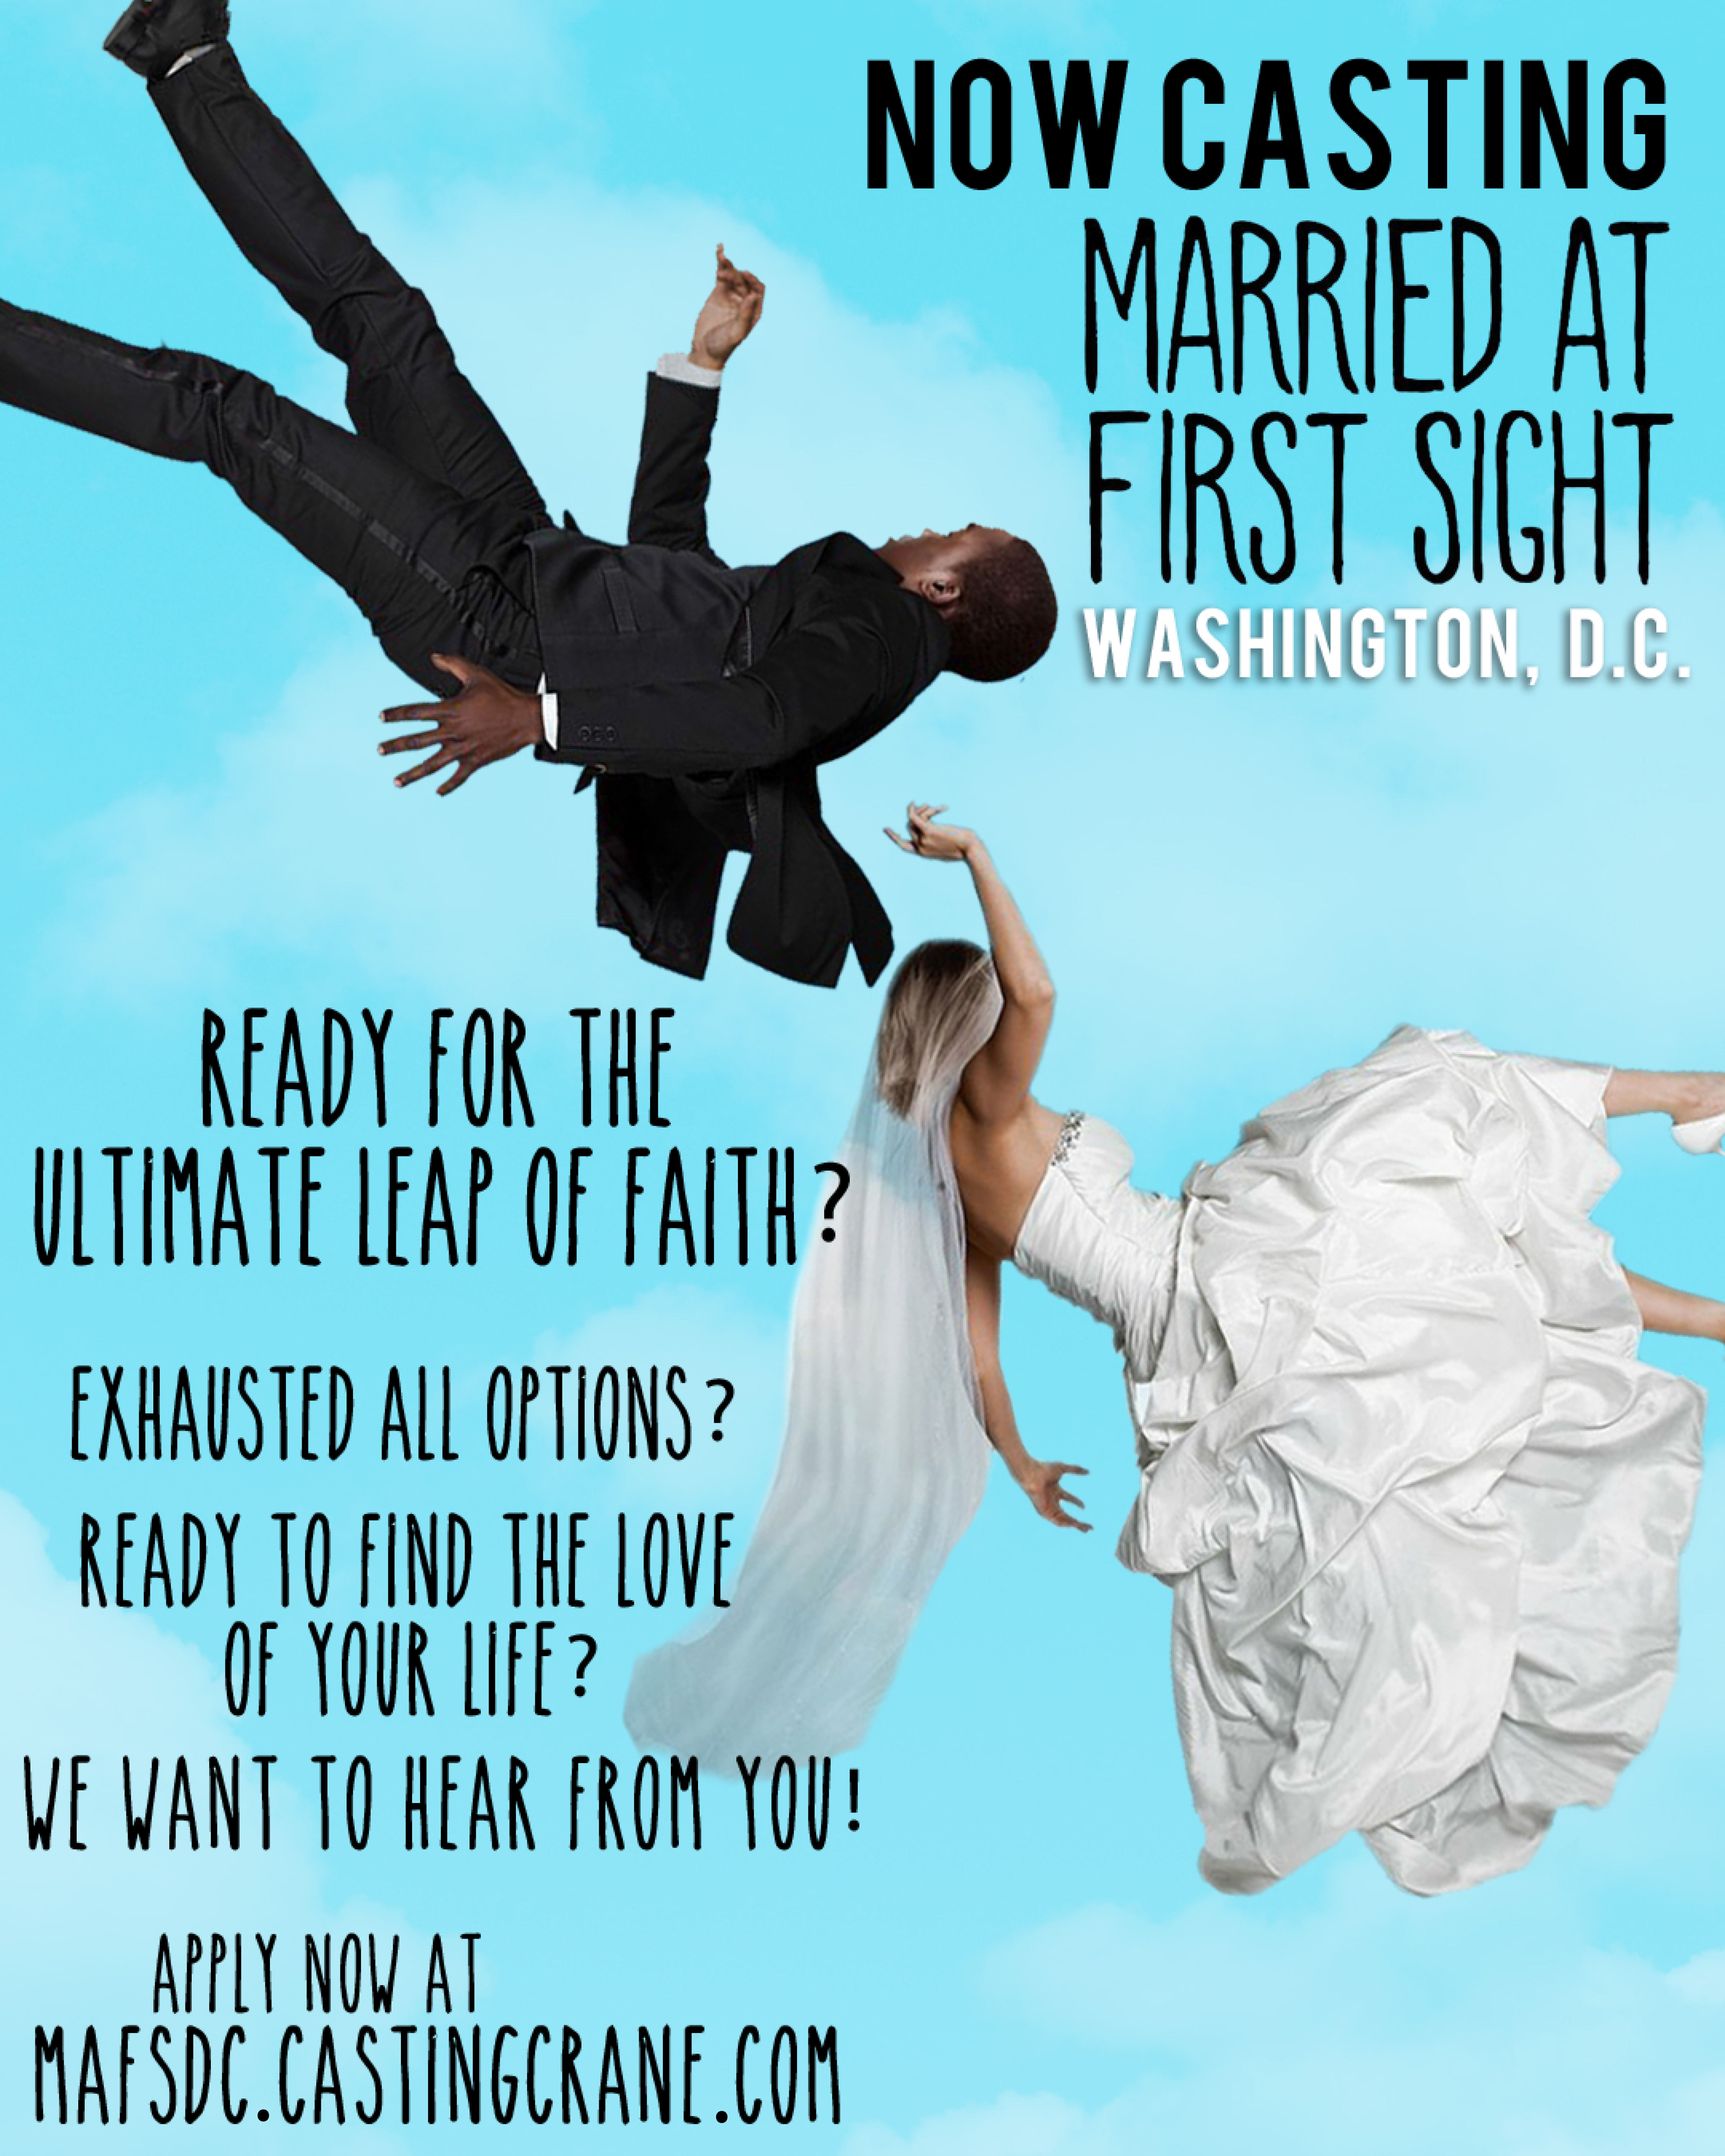 Married at First Sight Casting